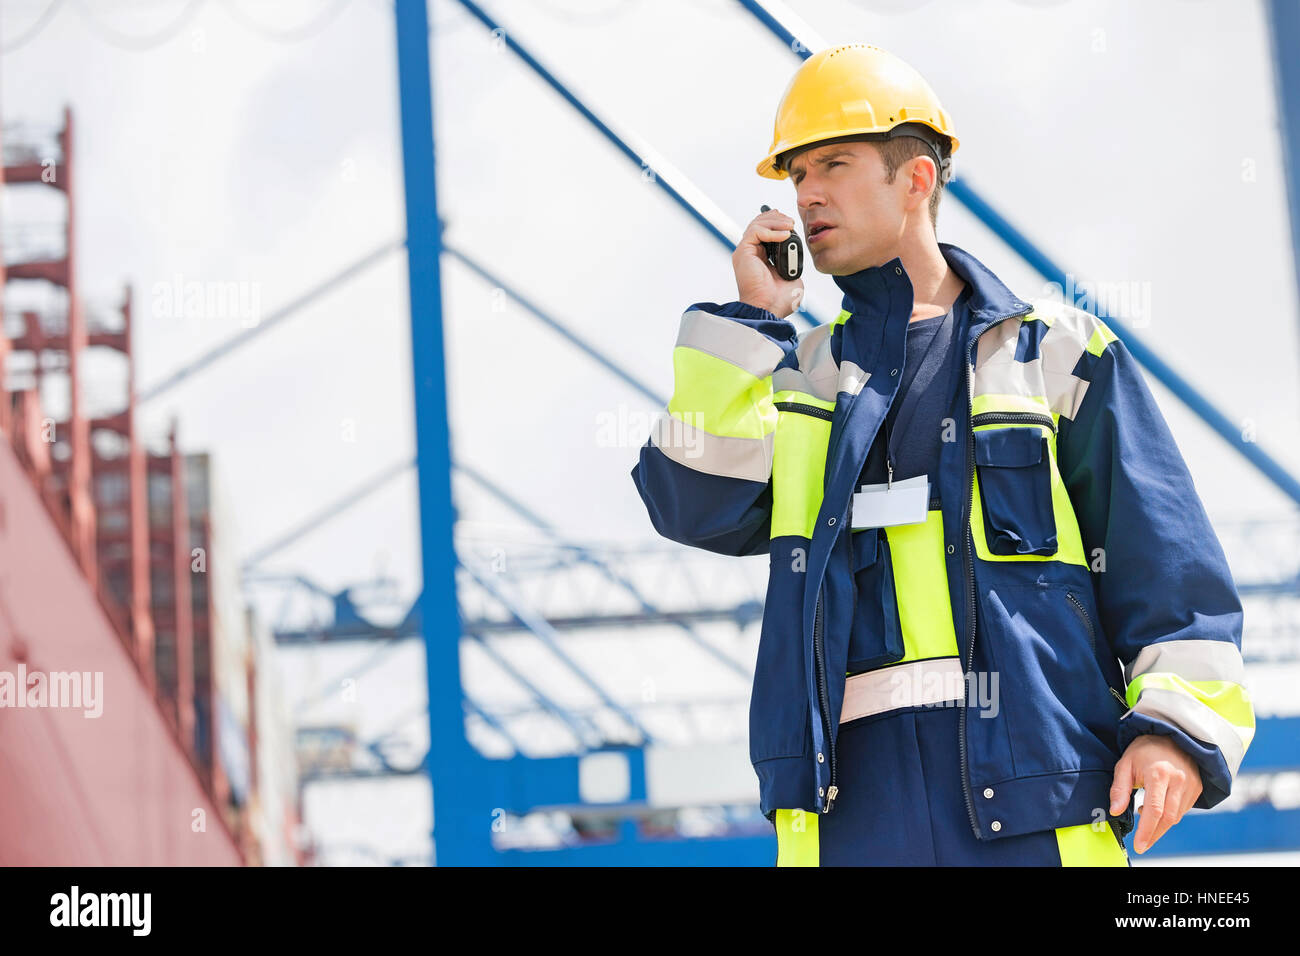 Mid adult male worker using walkie-talkie in shipping yard - Stock Image